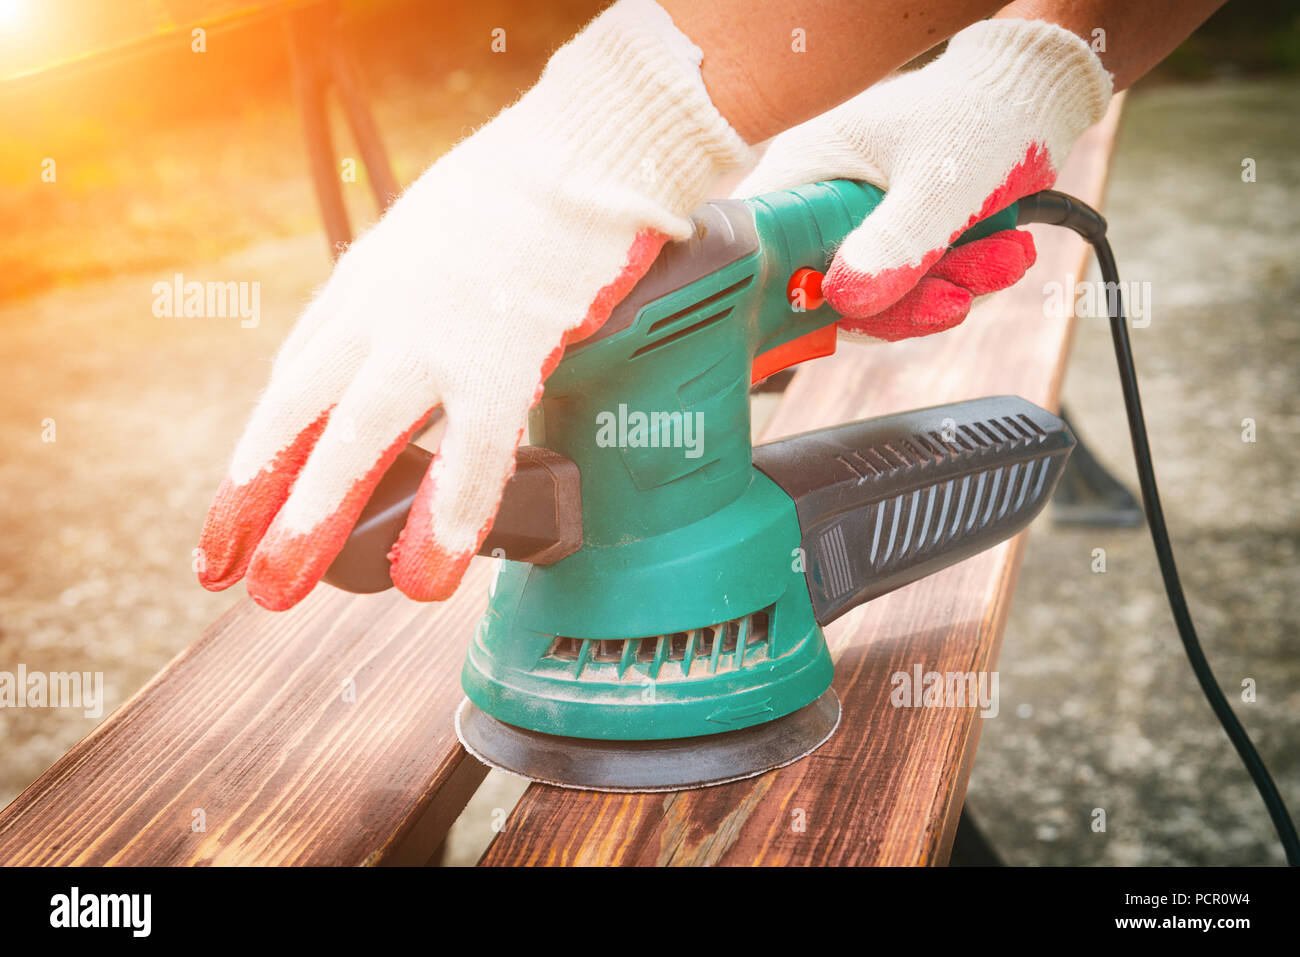 Sanding a wood with orbital sander outdoor Stock Photo